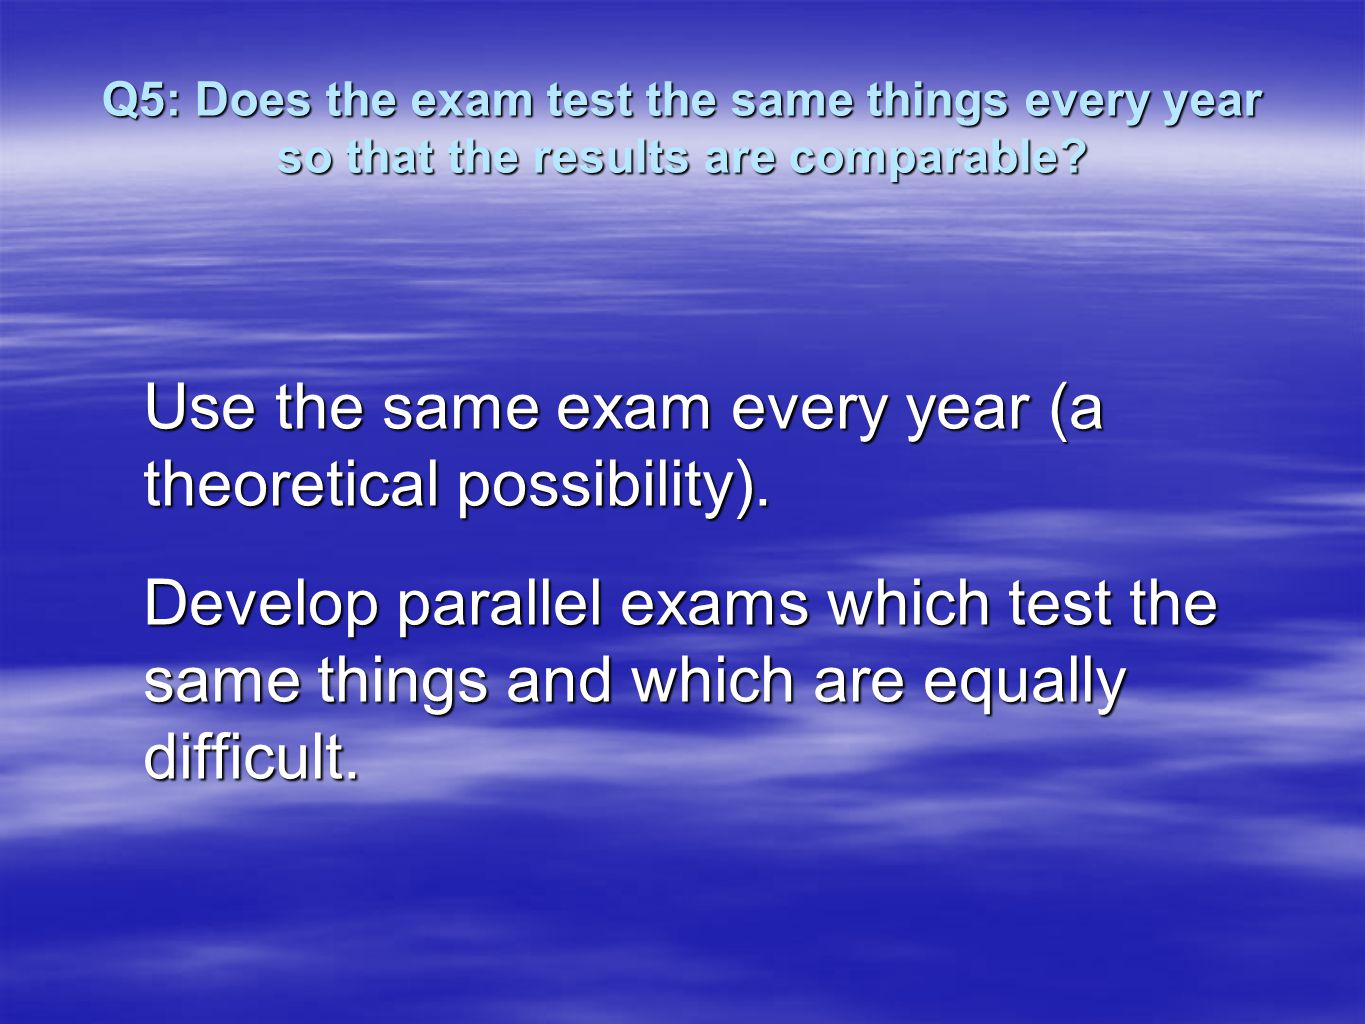 Q5: Does the exam test the same things every year so that the results are comparable.